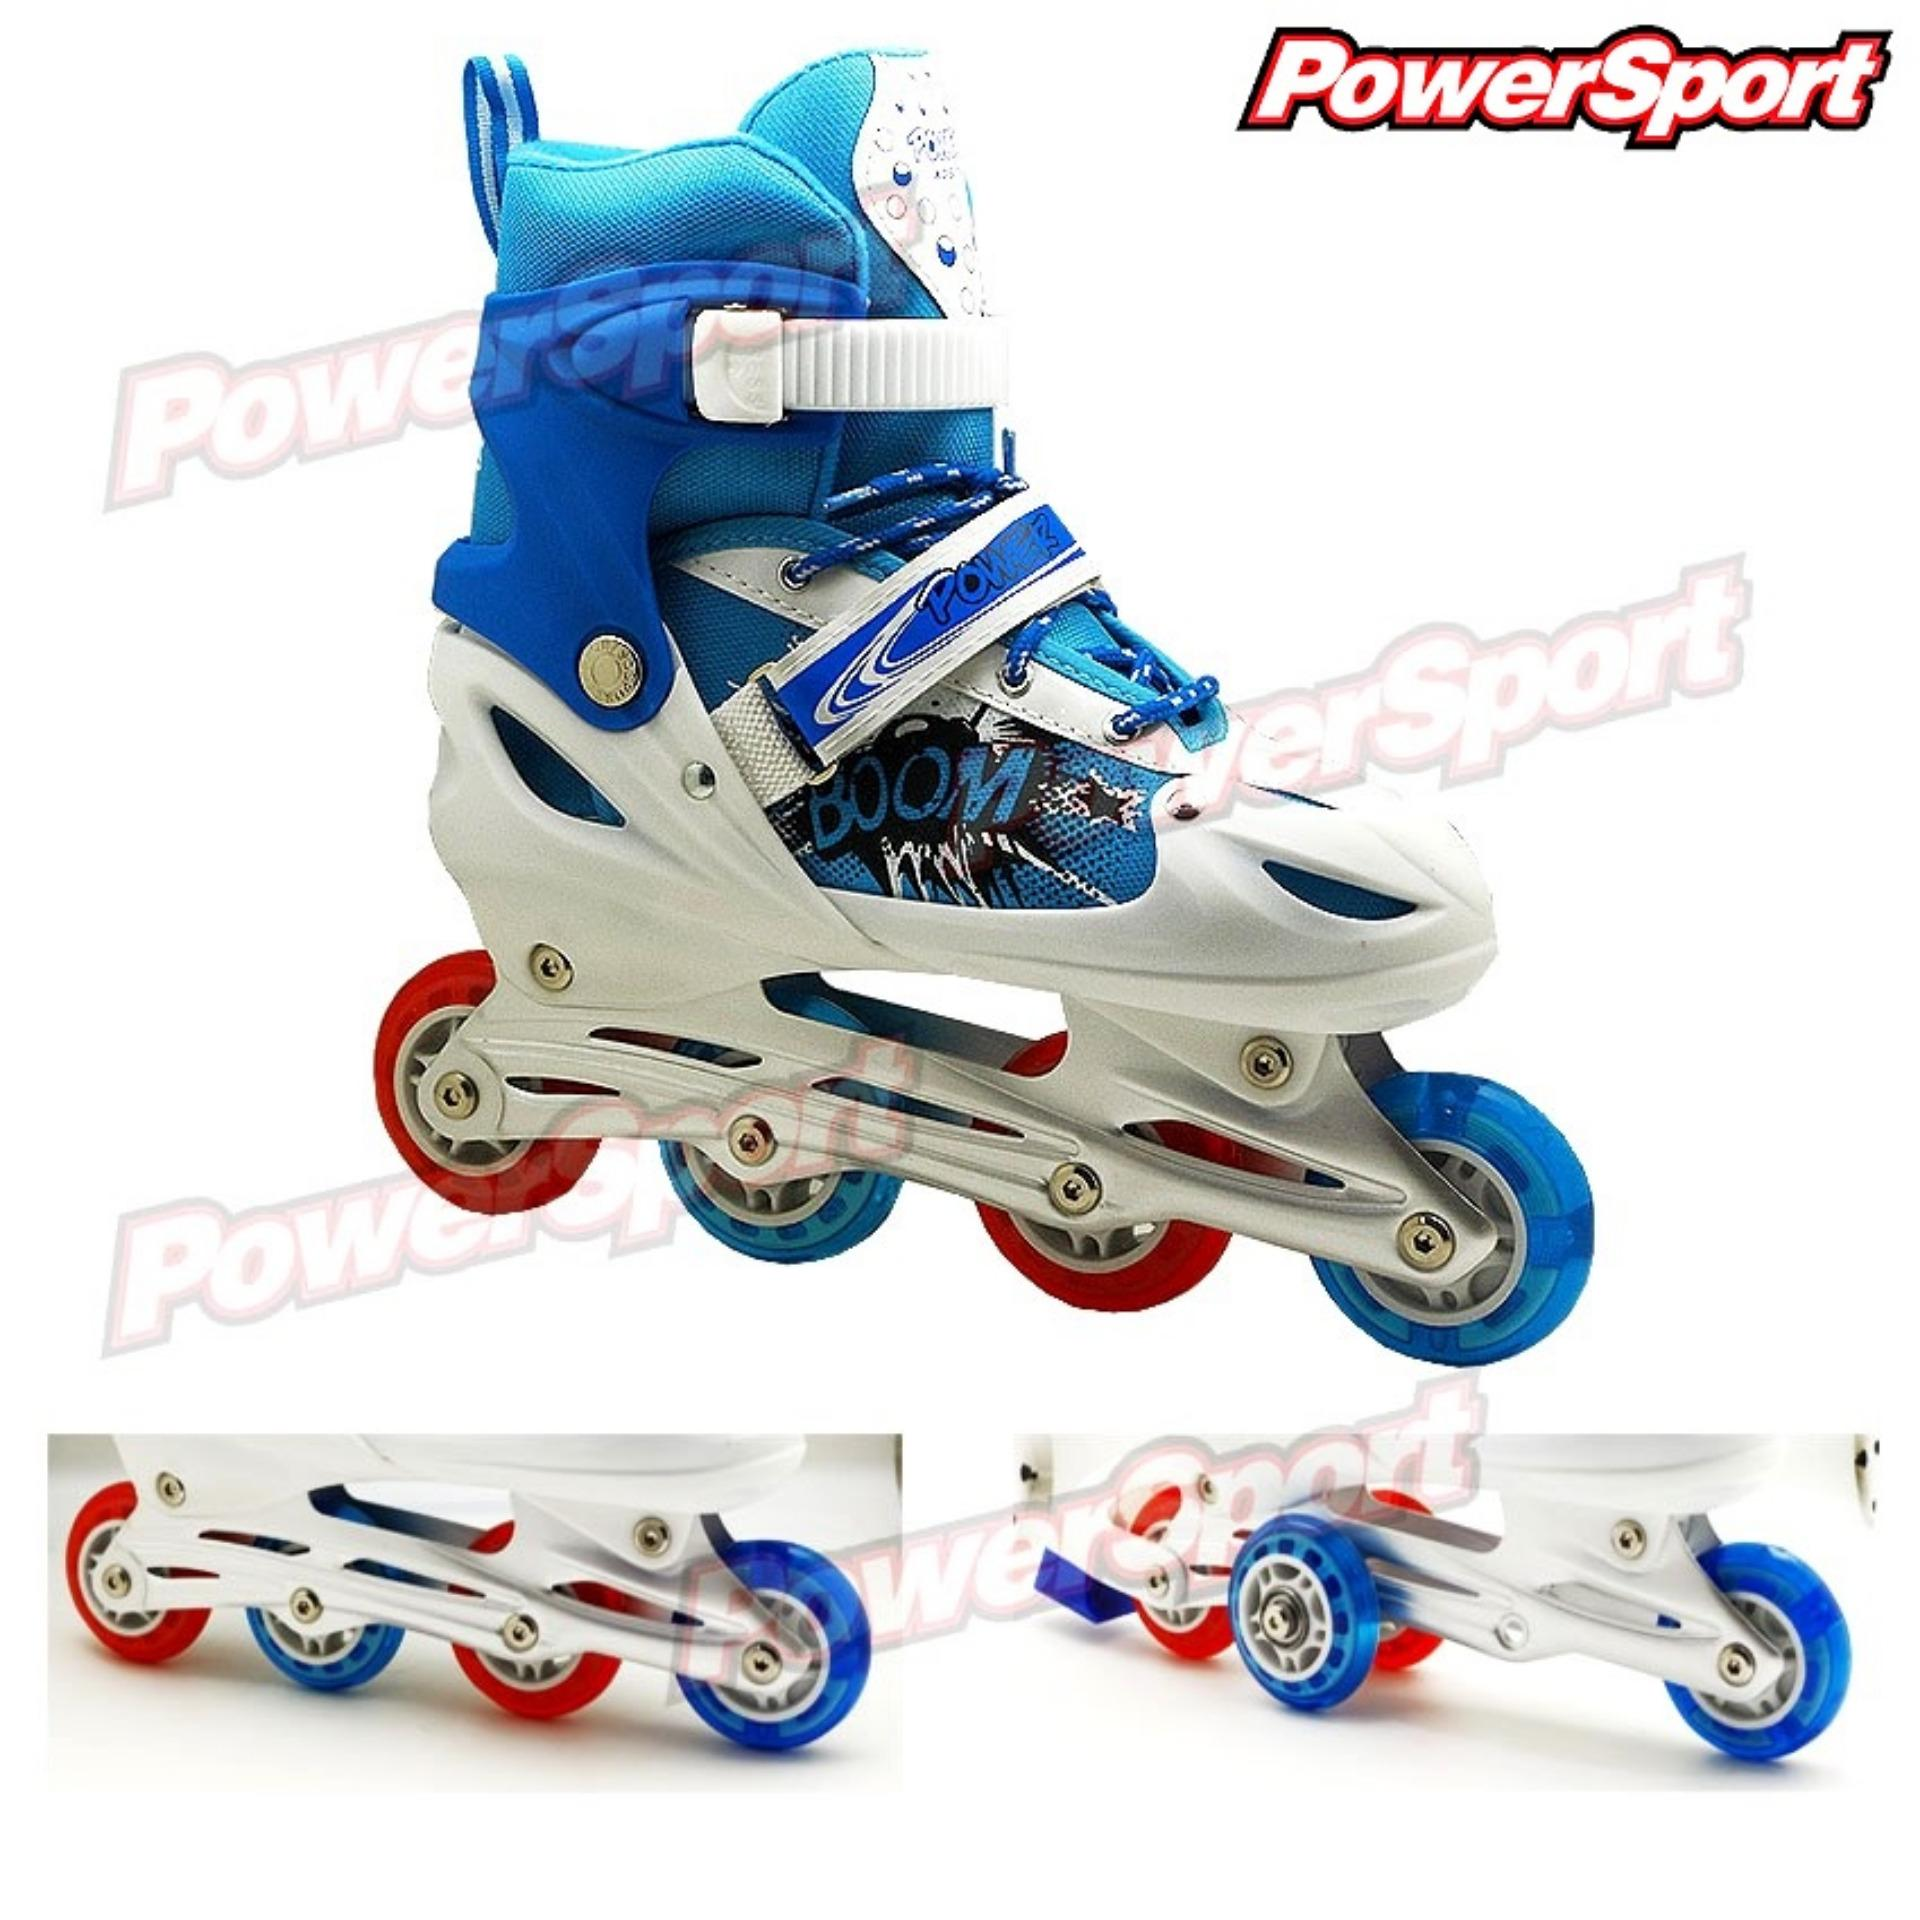 PowerSport Boom inLine Skate Sepatu Roda Adjustable Wheel - Hijau Neon L  (38 - 42)  a7e45d3242